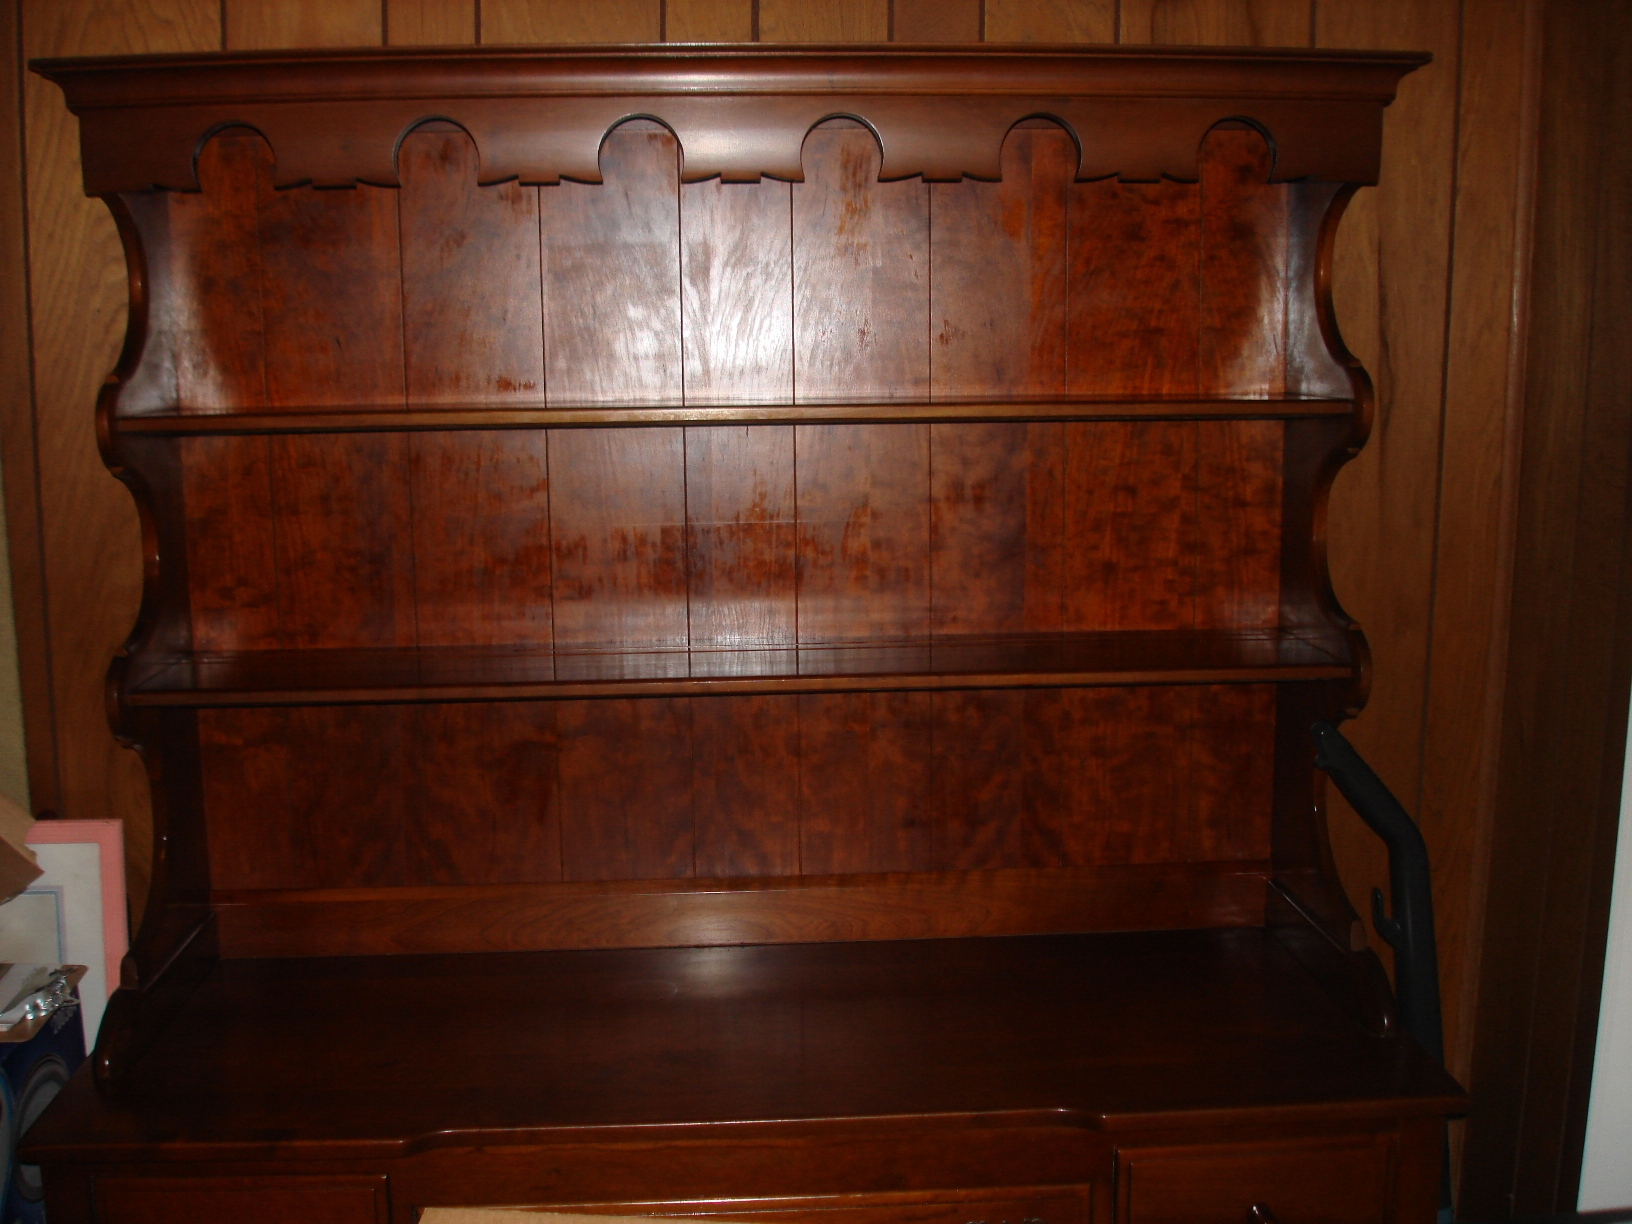 Solid Cherry Hutch By Monitor Furniture Co Jamestown Ny Antique Appraisal Instappraisal